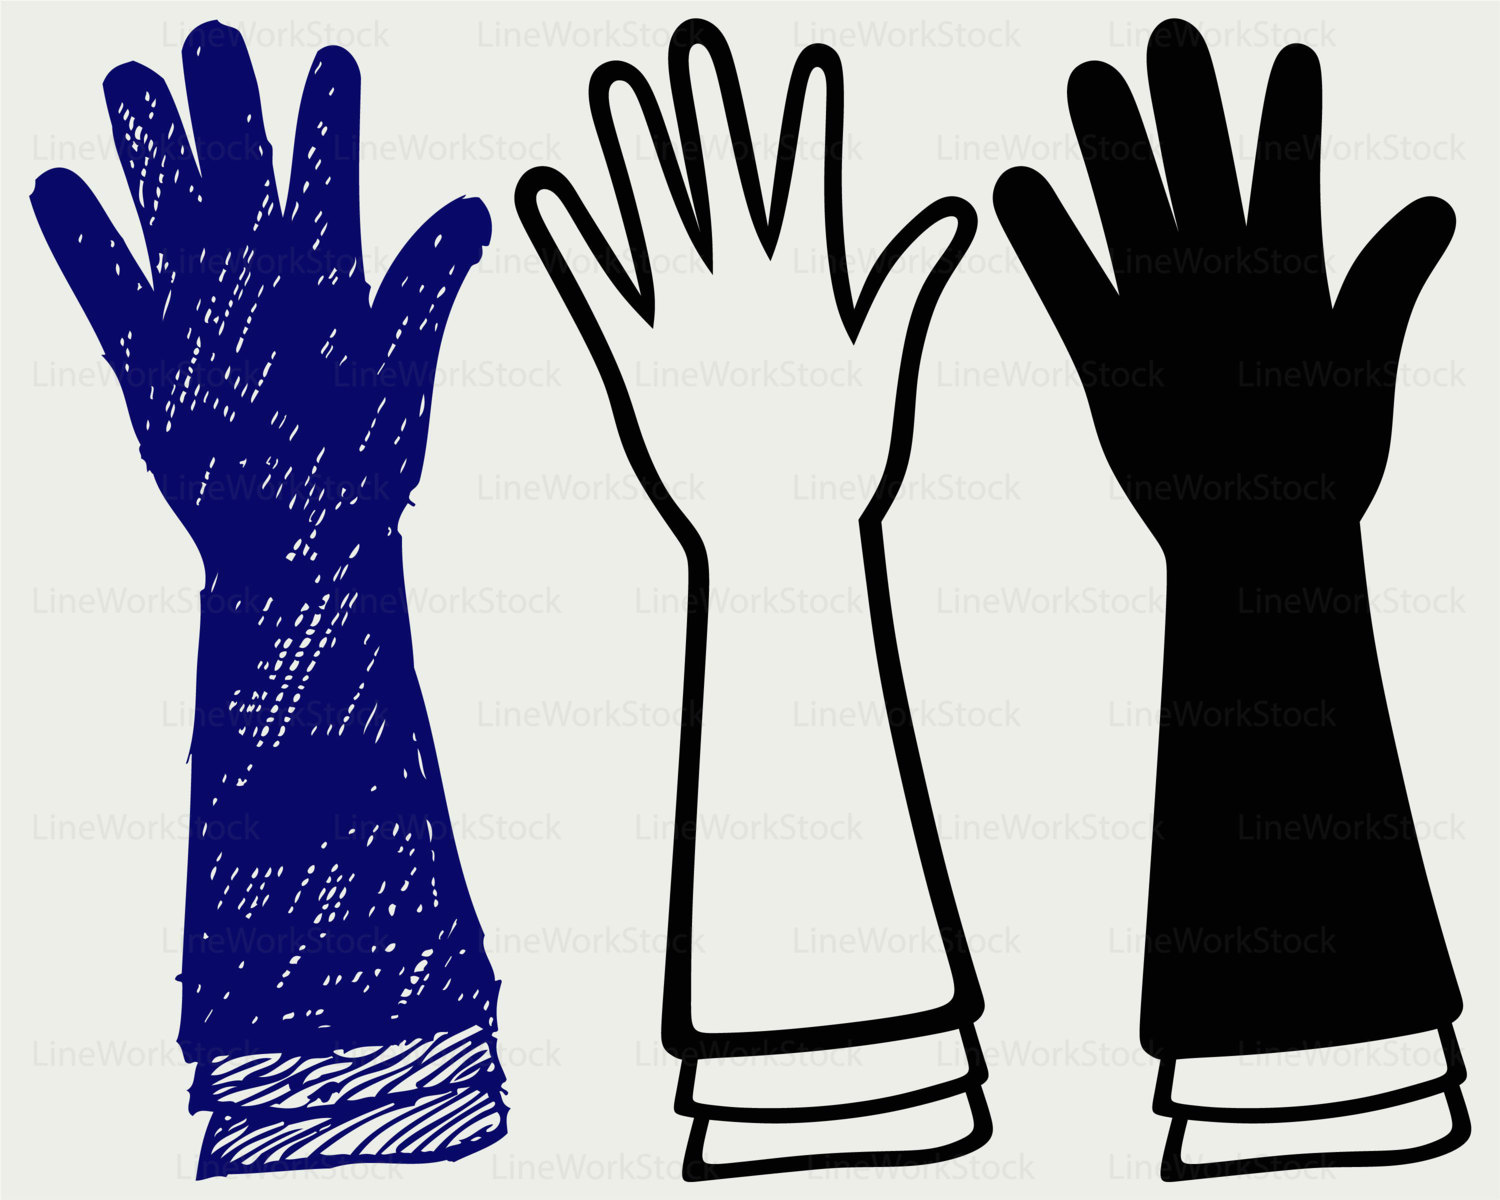 Glove svg #1, Download drawings